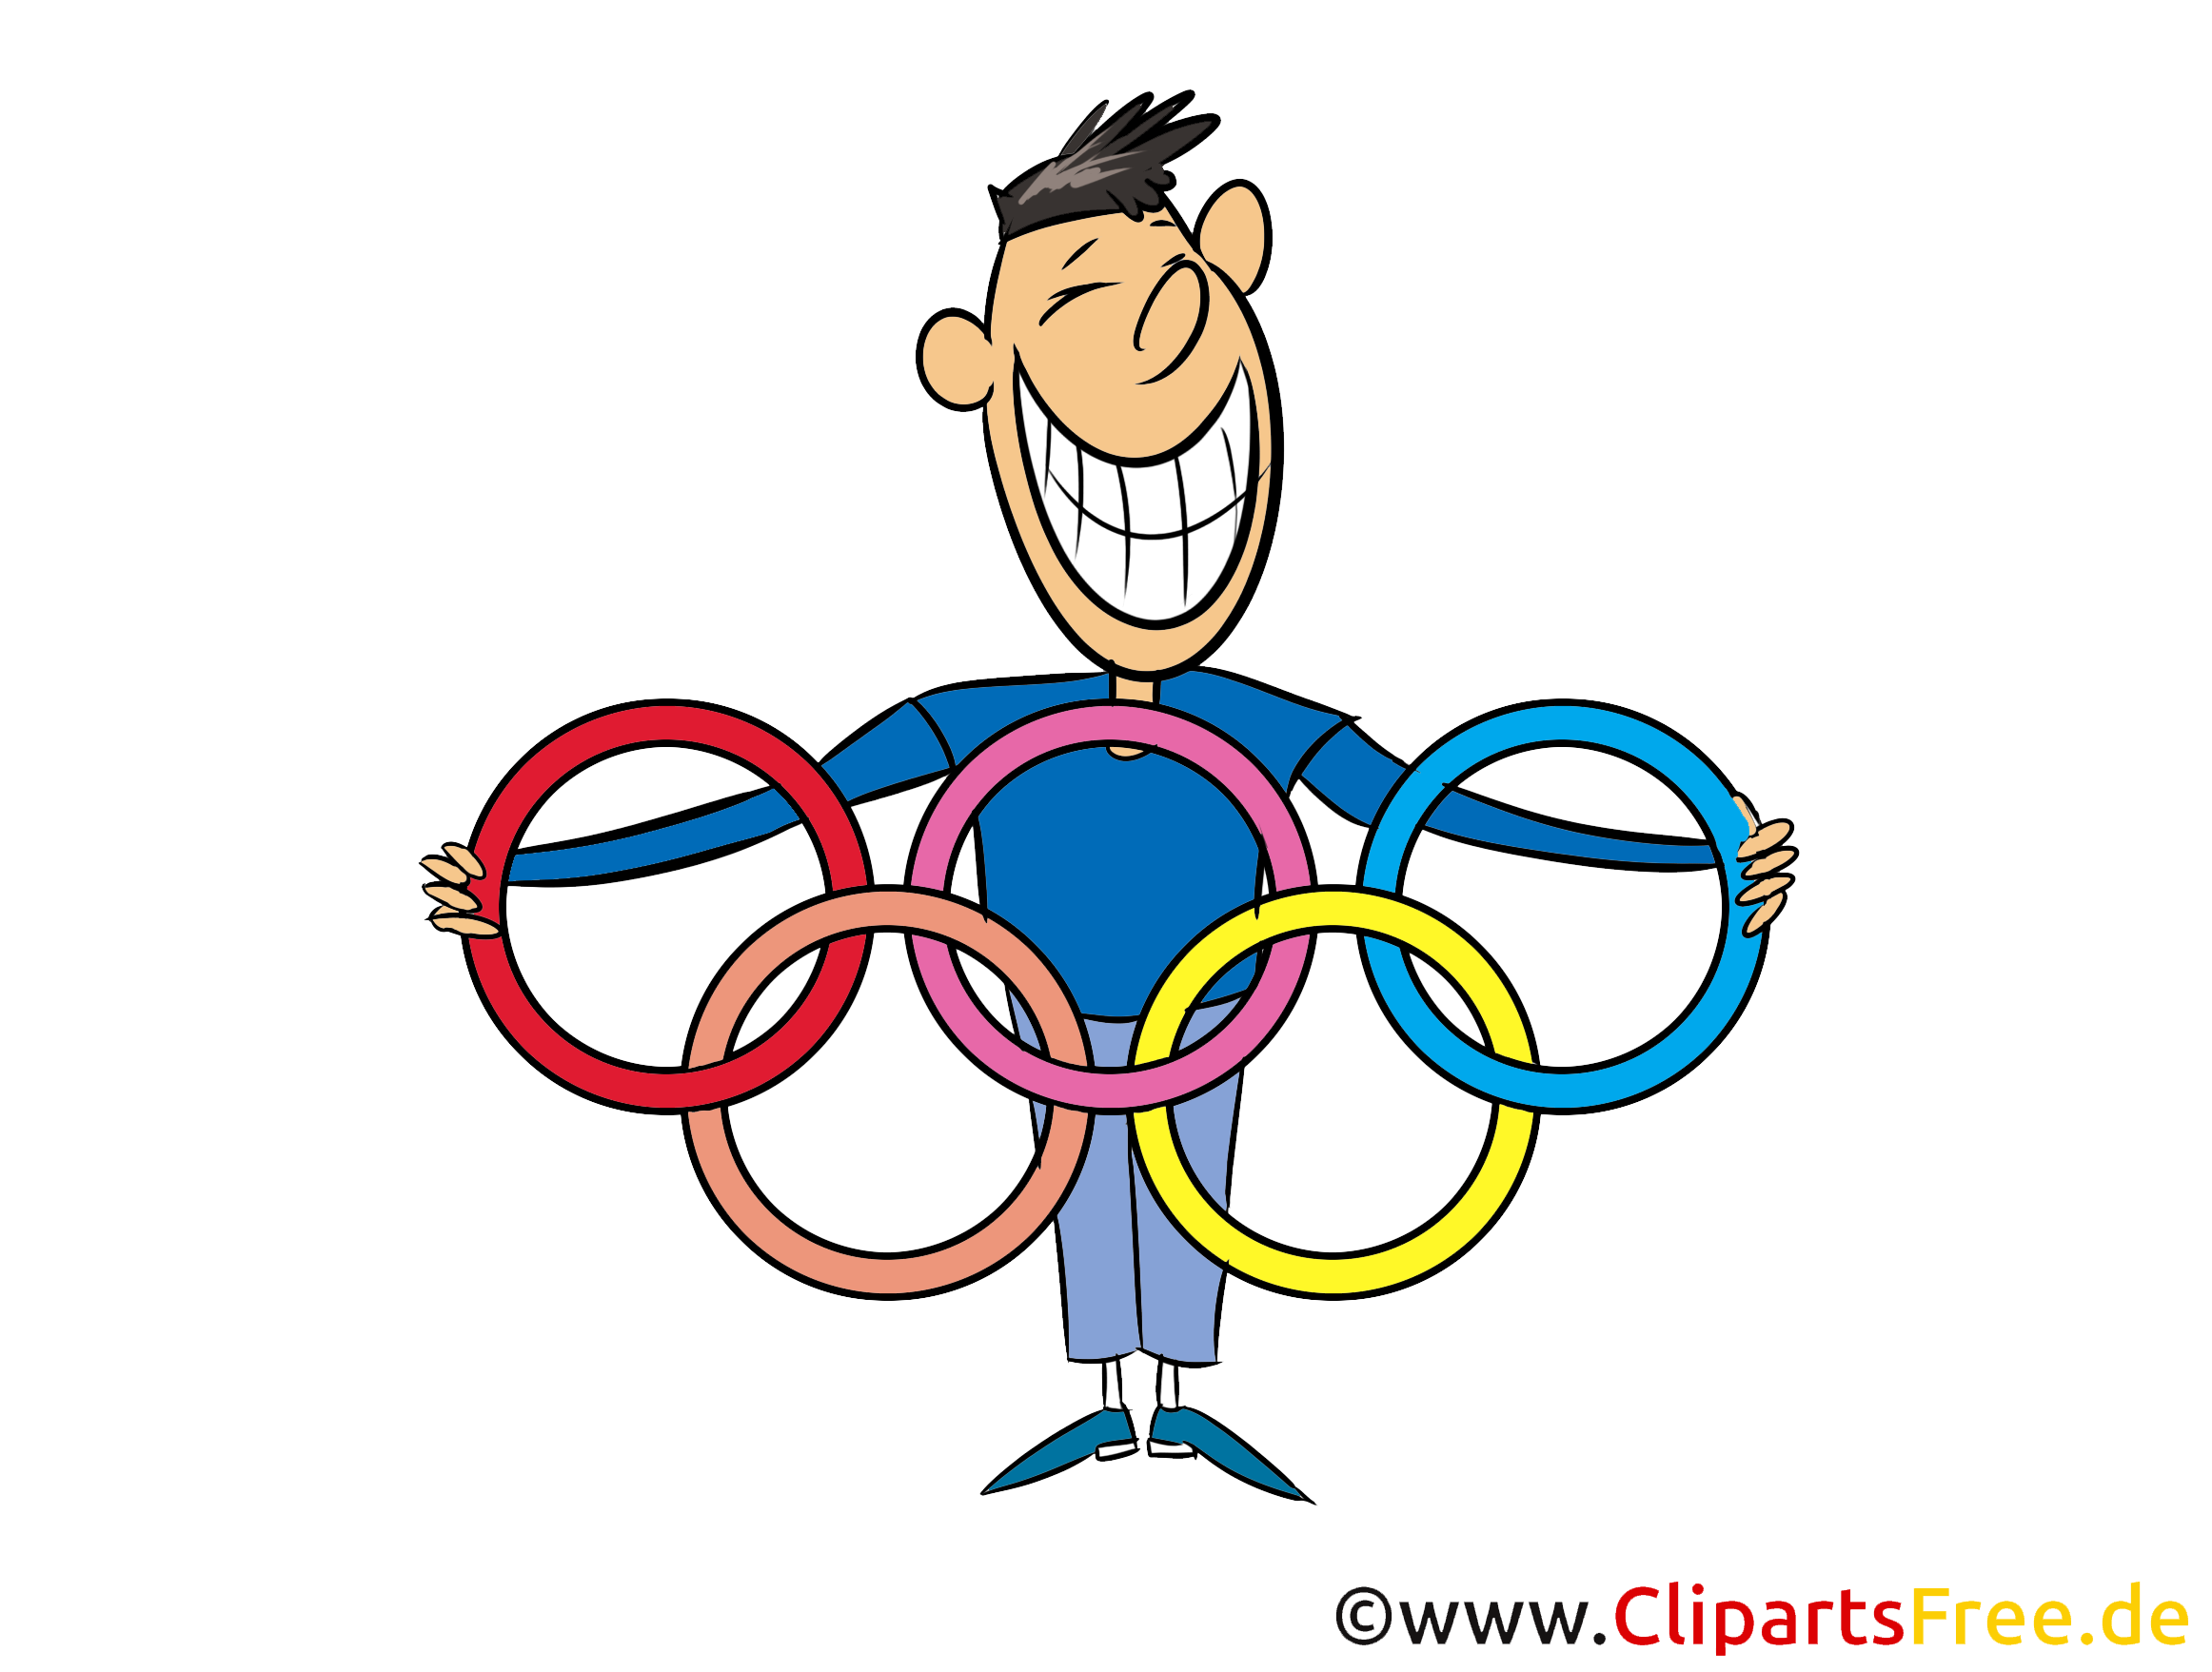 2021 Olympia Comic-Clipart